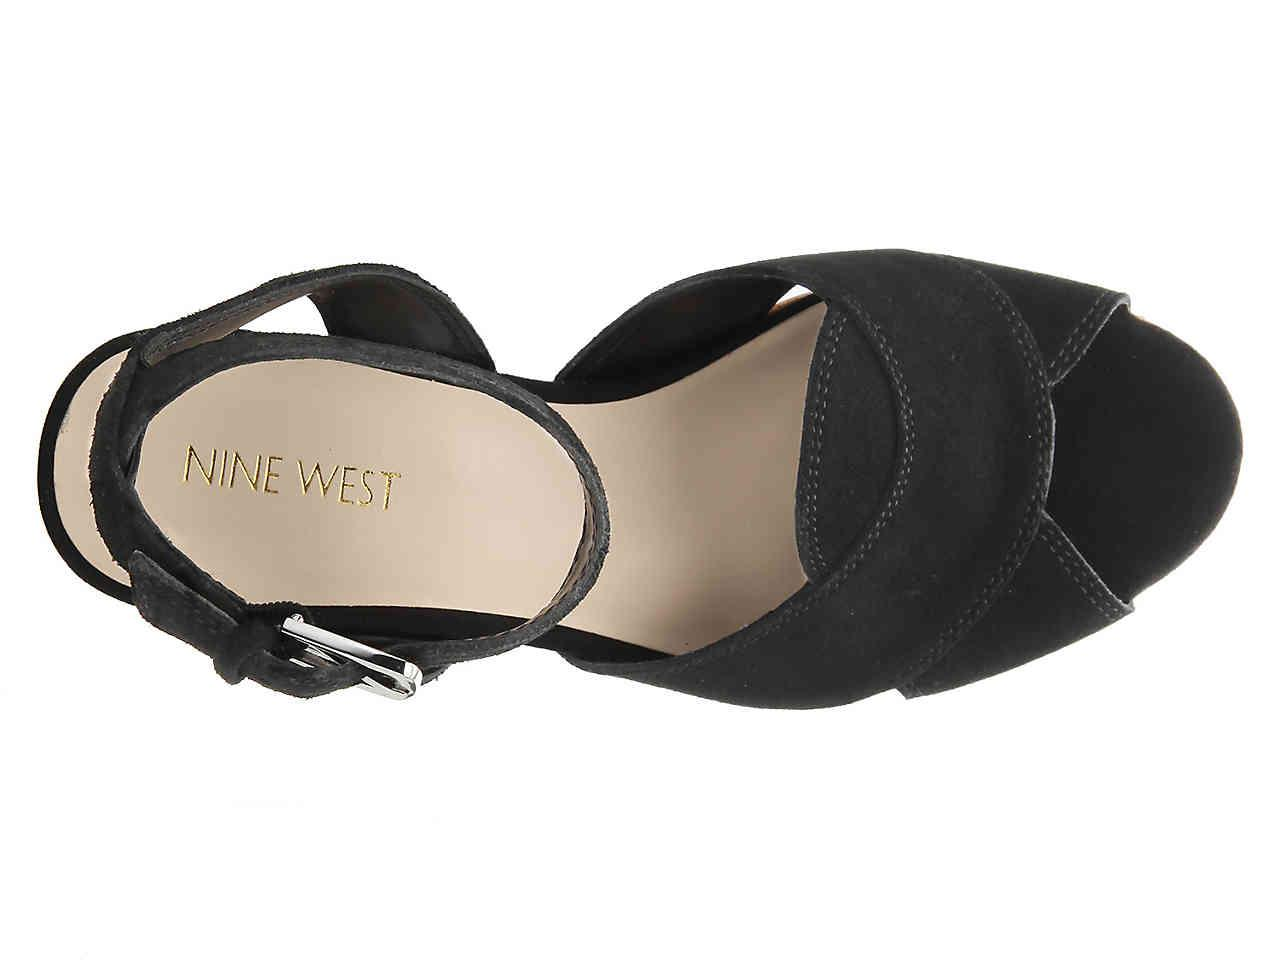 09ade686f08e Nine West - Black Kierredy Wedge Sandal - Lyst. View fullscreen